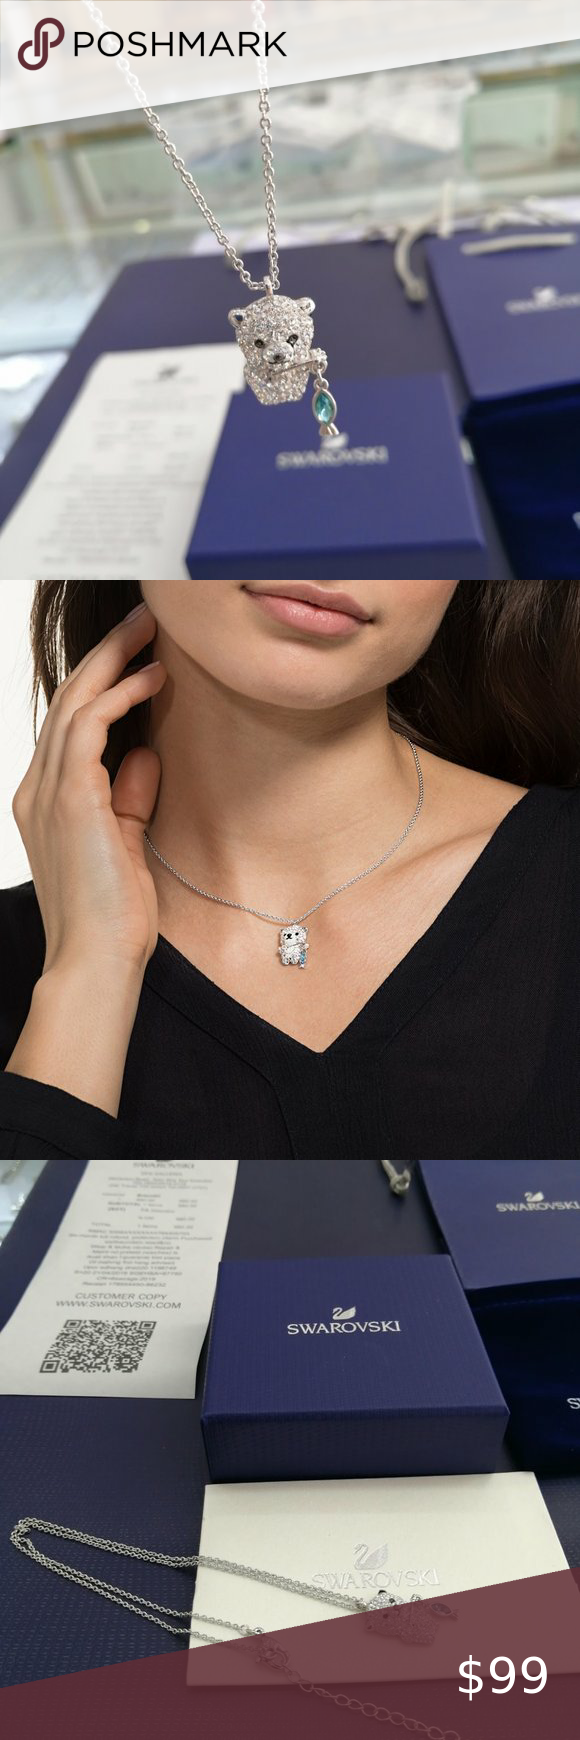 32++ What stores sell swarovski jewelry ideas in 2021